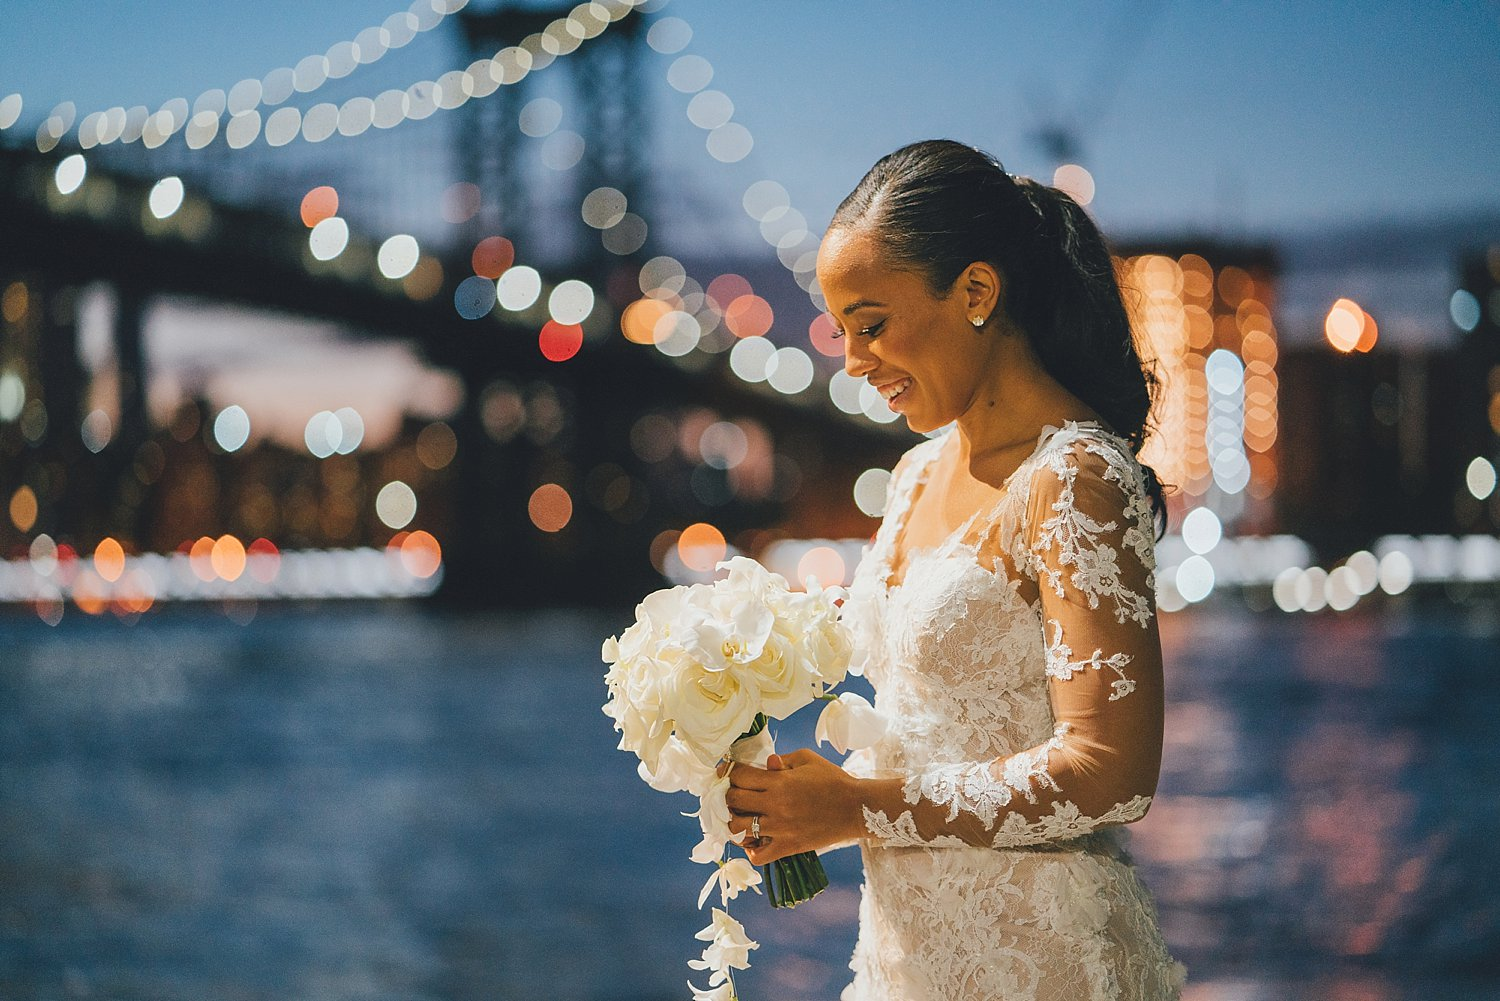 nyc-wedding-photography-nj-tri-state-cinematography-intothestory-by-moo-jae_0197.jpg